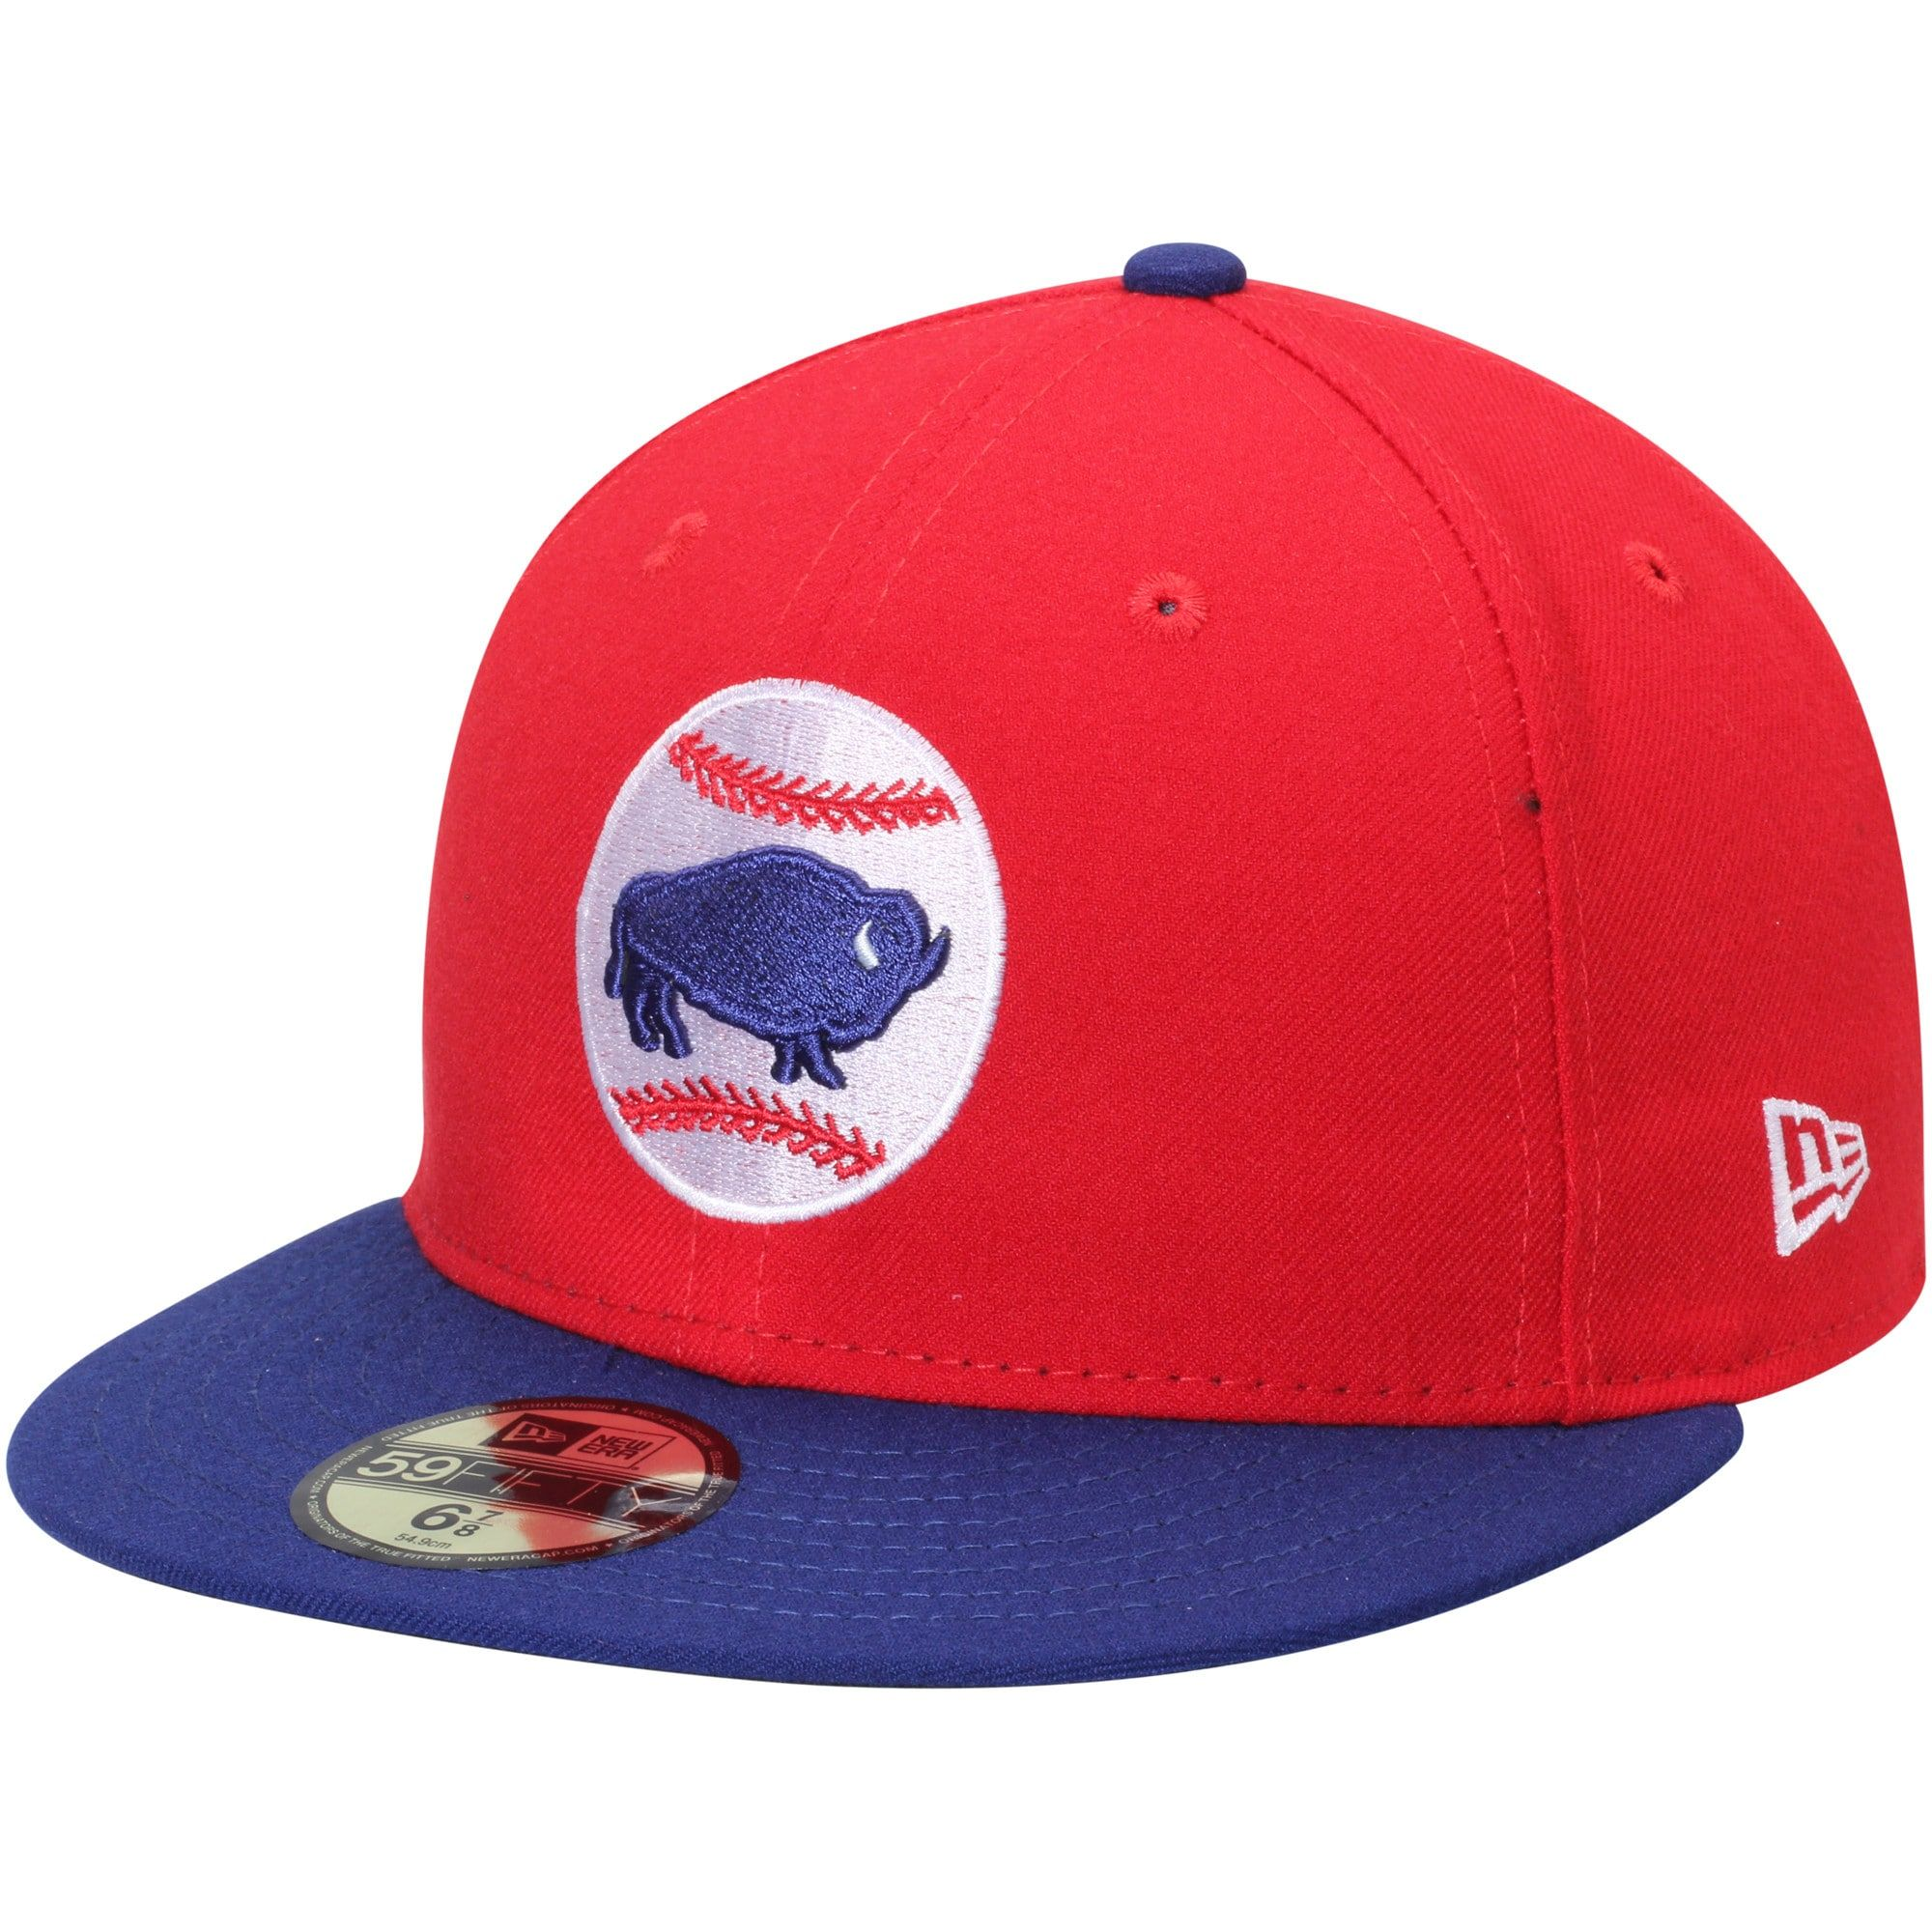 Buffalo Bisons New Era Alternate2 Authentic Collection 59fifty Fitted Hat Red Fitted Hats Hats New Era